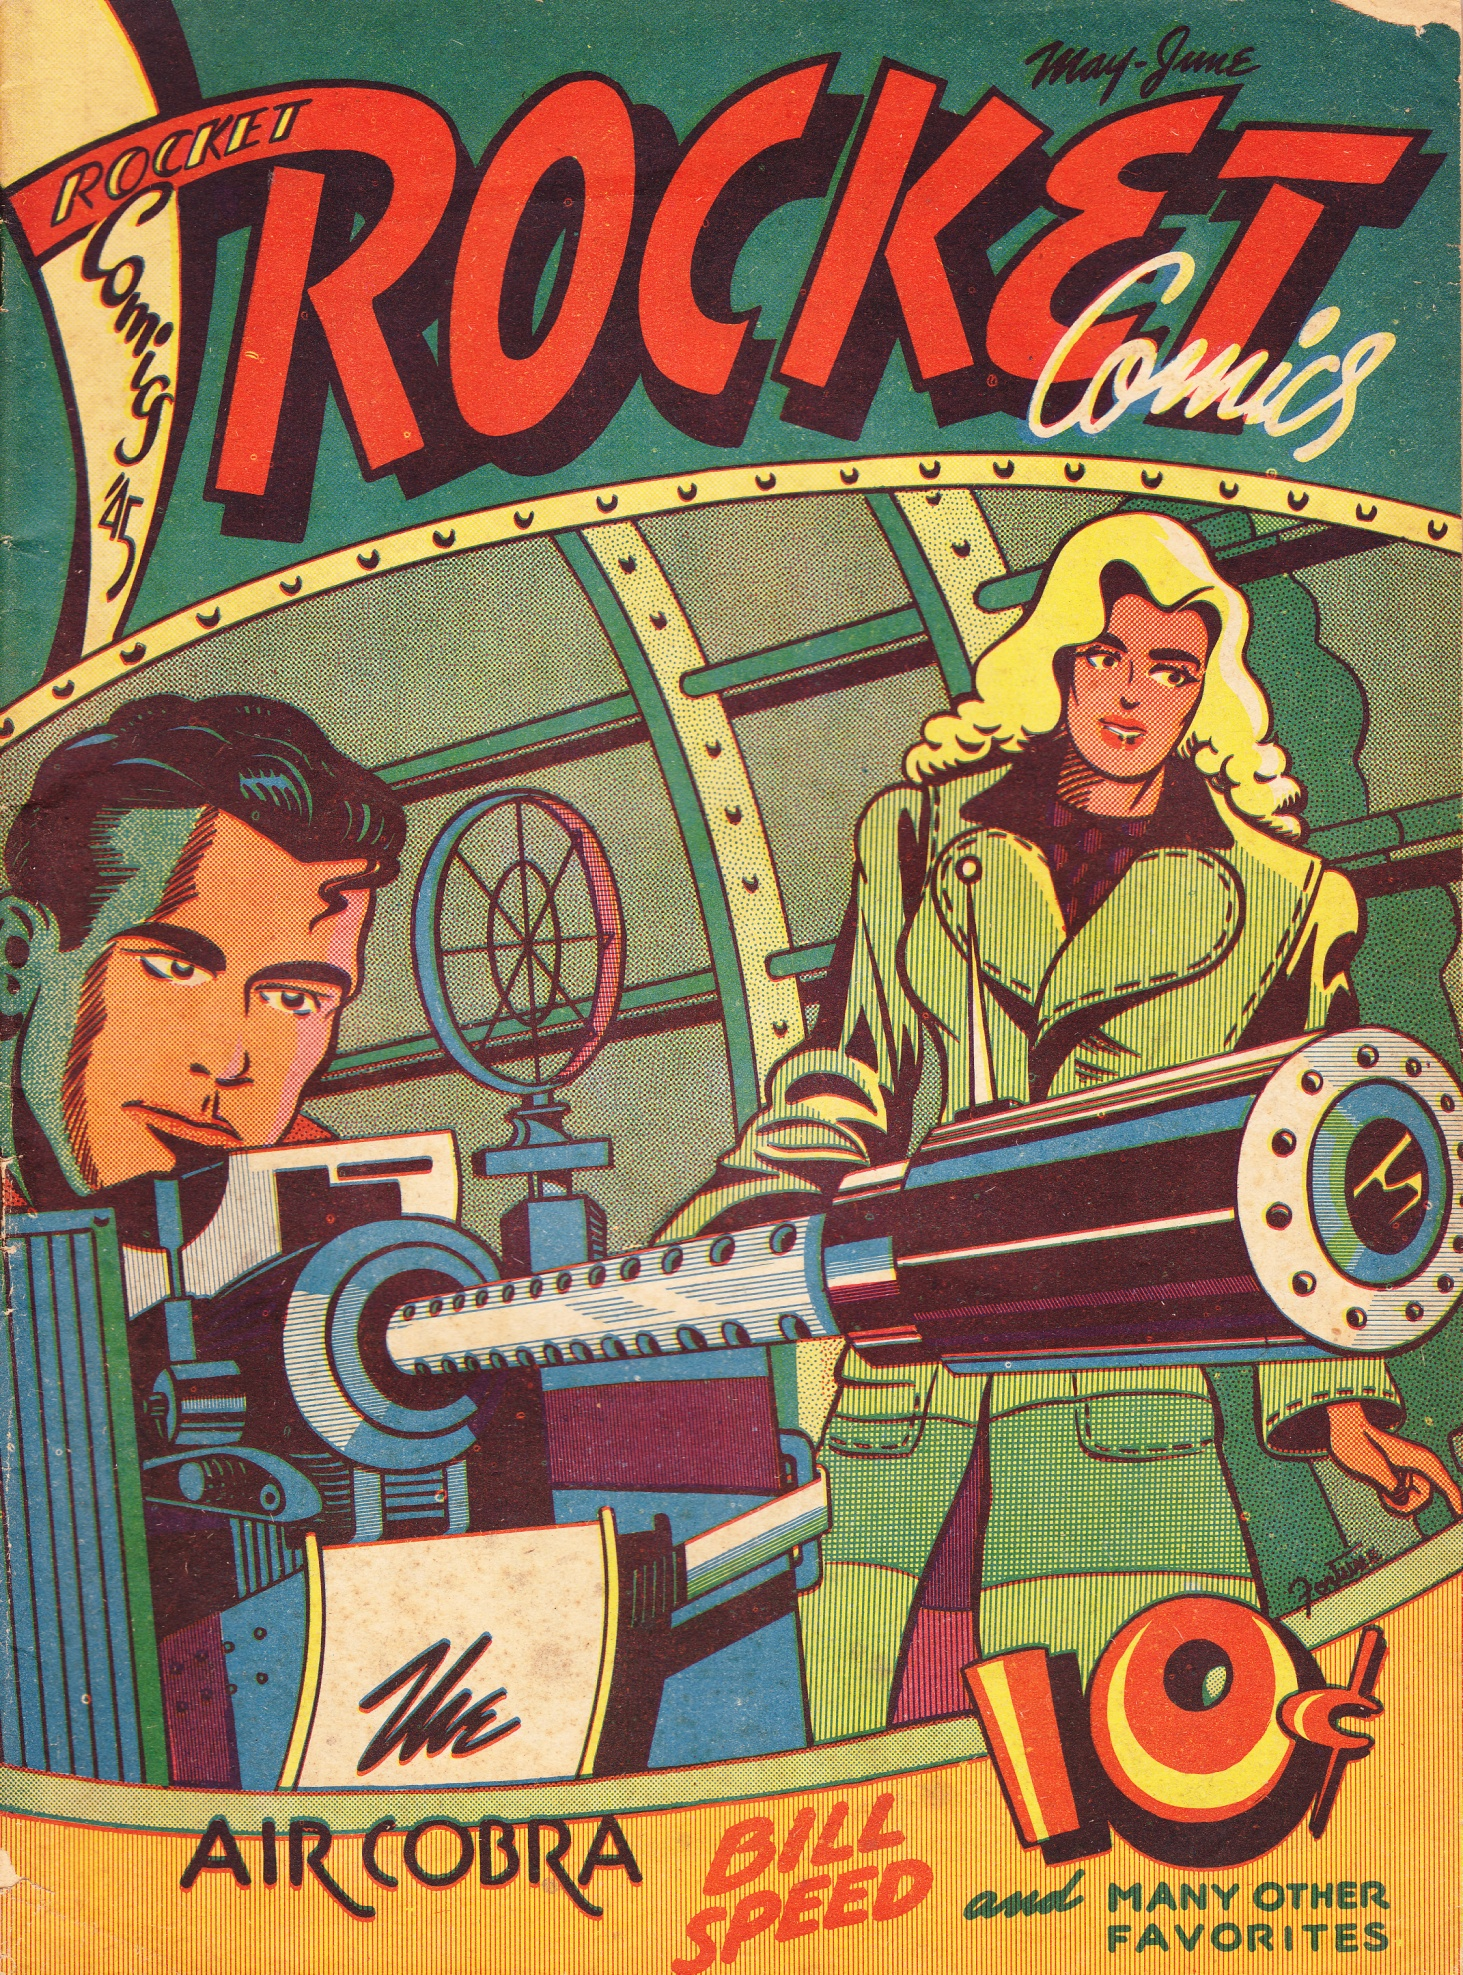 C:\Users\Robert\Documents\CARTOONING ILLUSTRATION ANIMATION\IMAGE CARTOON\IMAGE CARTOON M\MONO THE AIR COBRA, Rocket, 5-4, MayJune 1945, cover.jpg